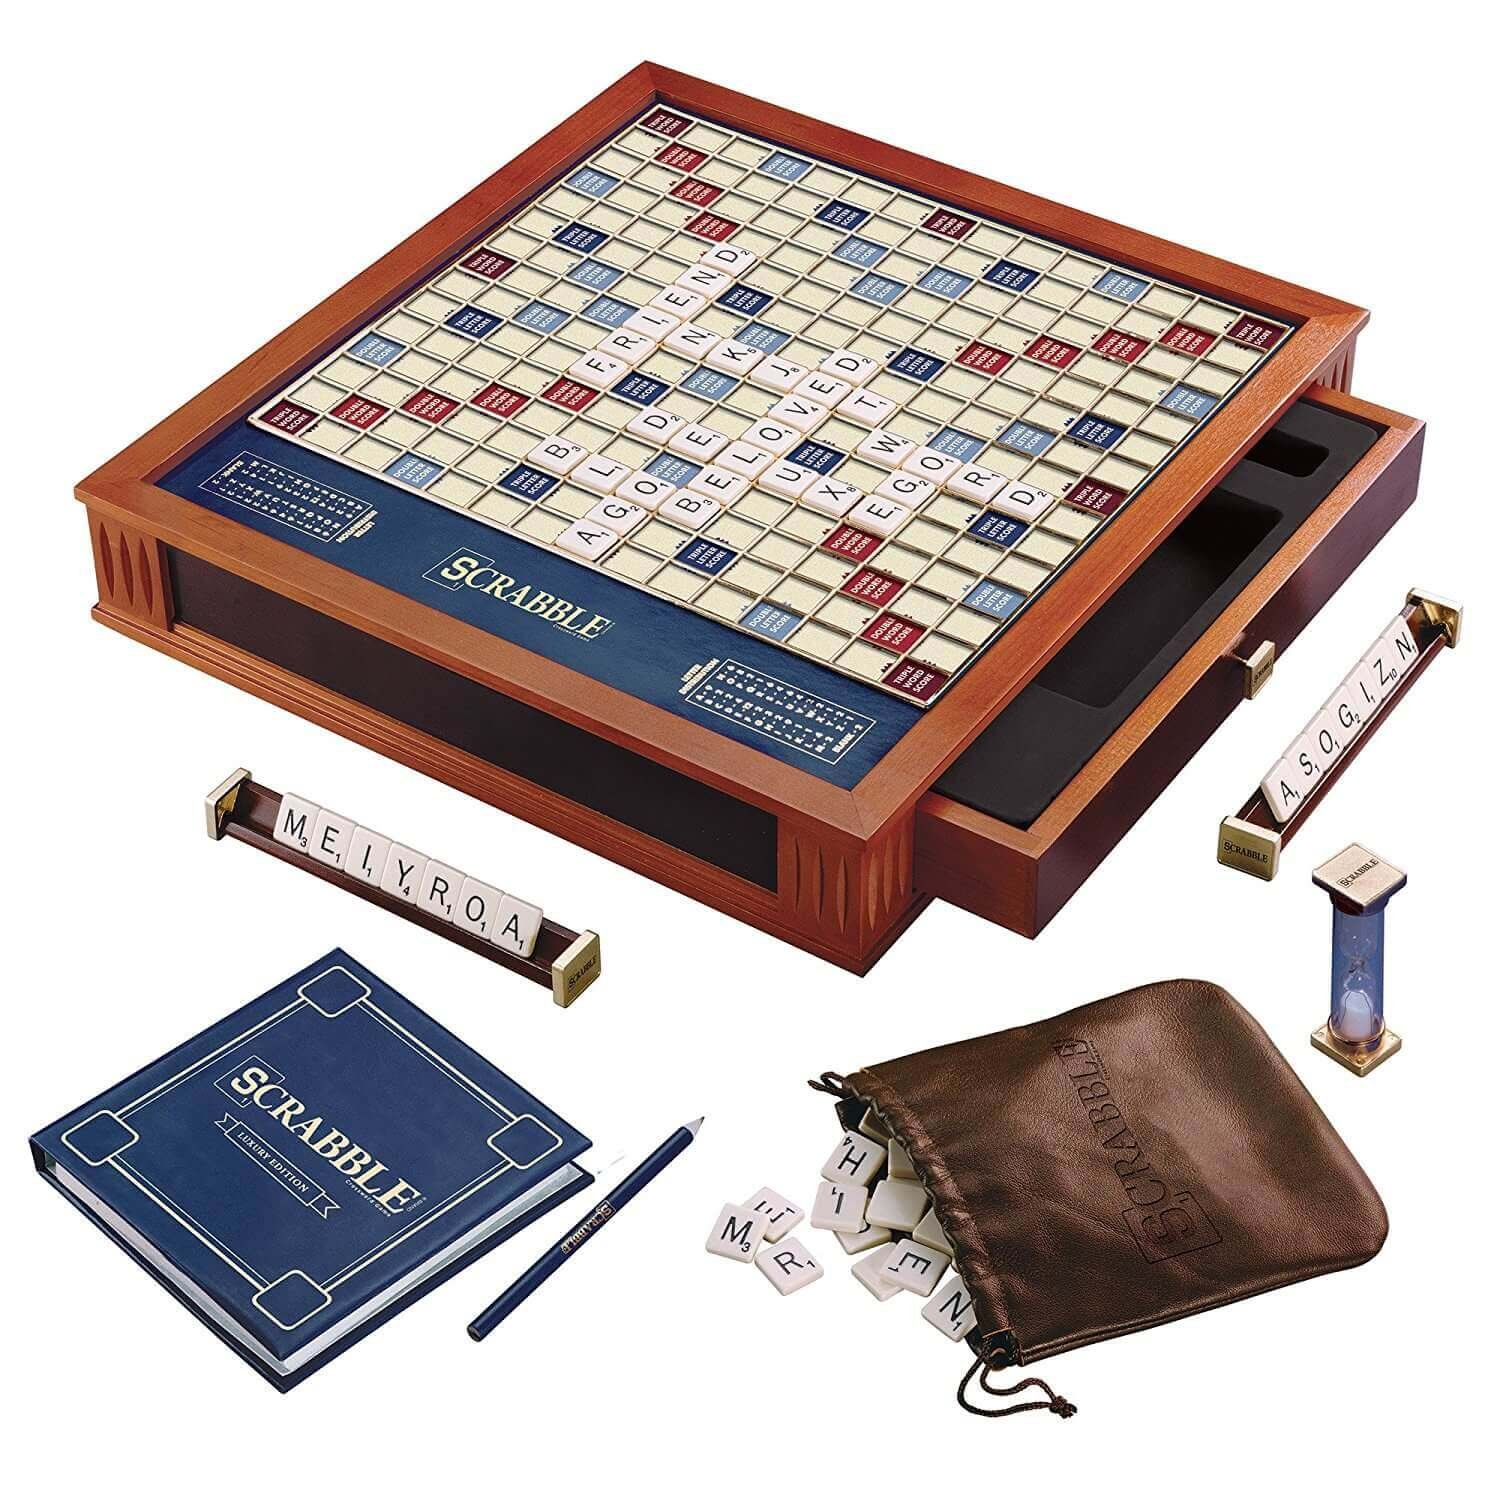 Scrabble Luxury Edition Board Game by Winning Solutions